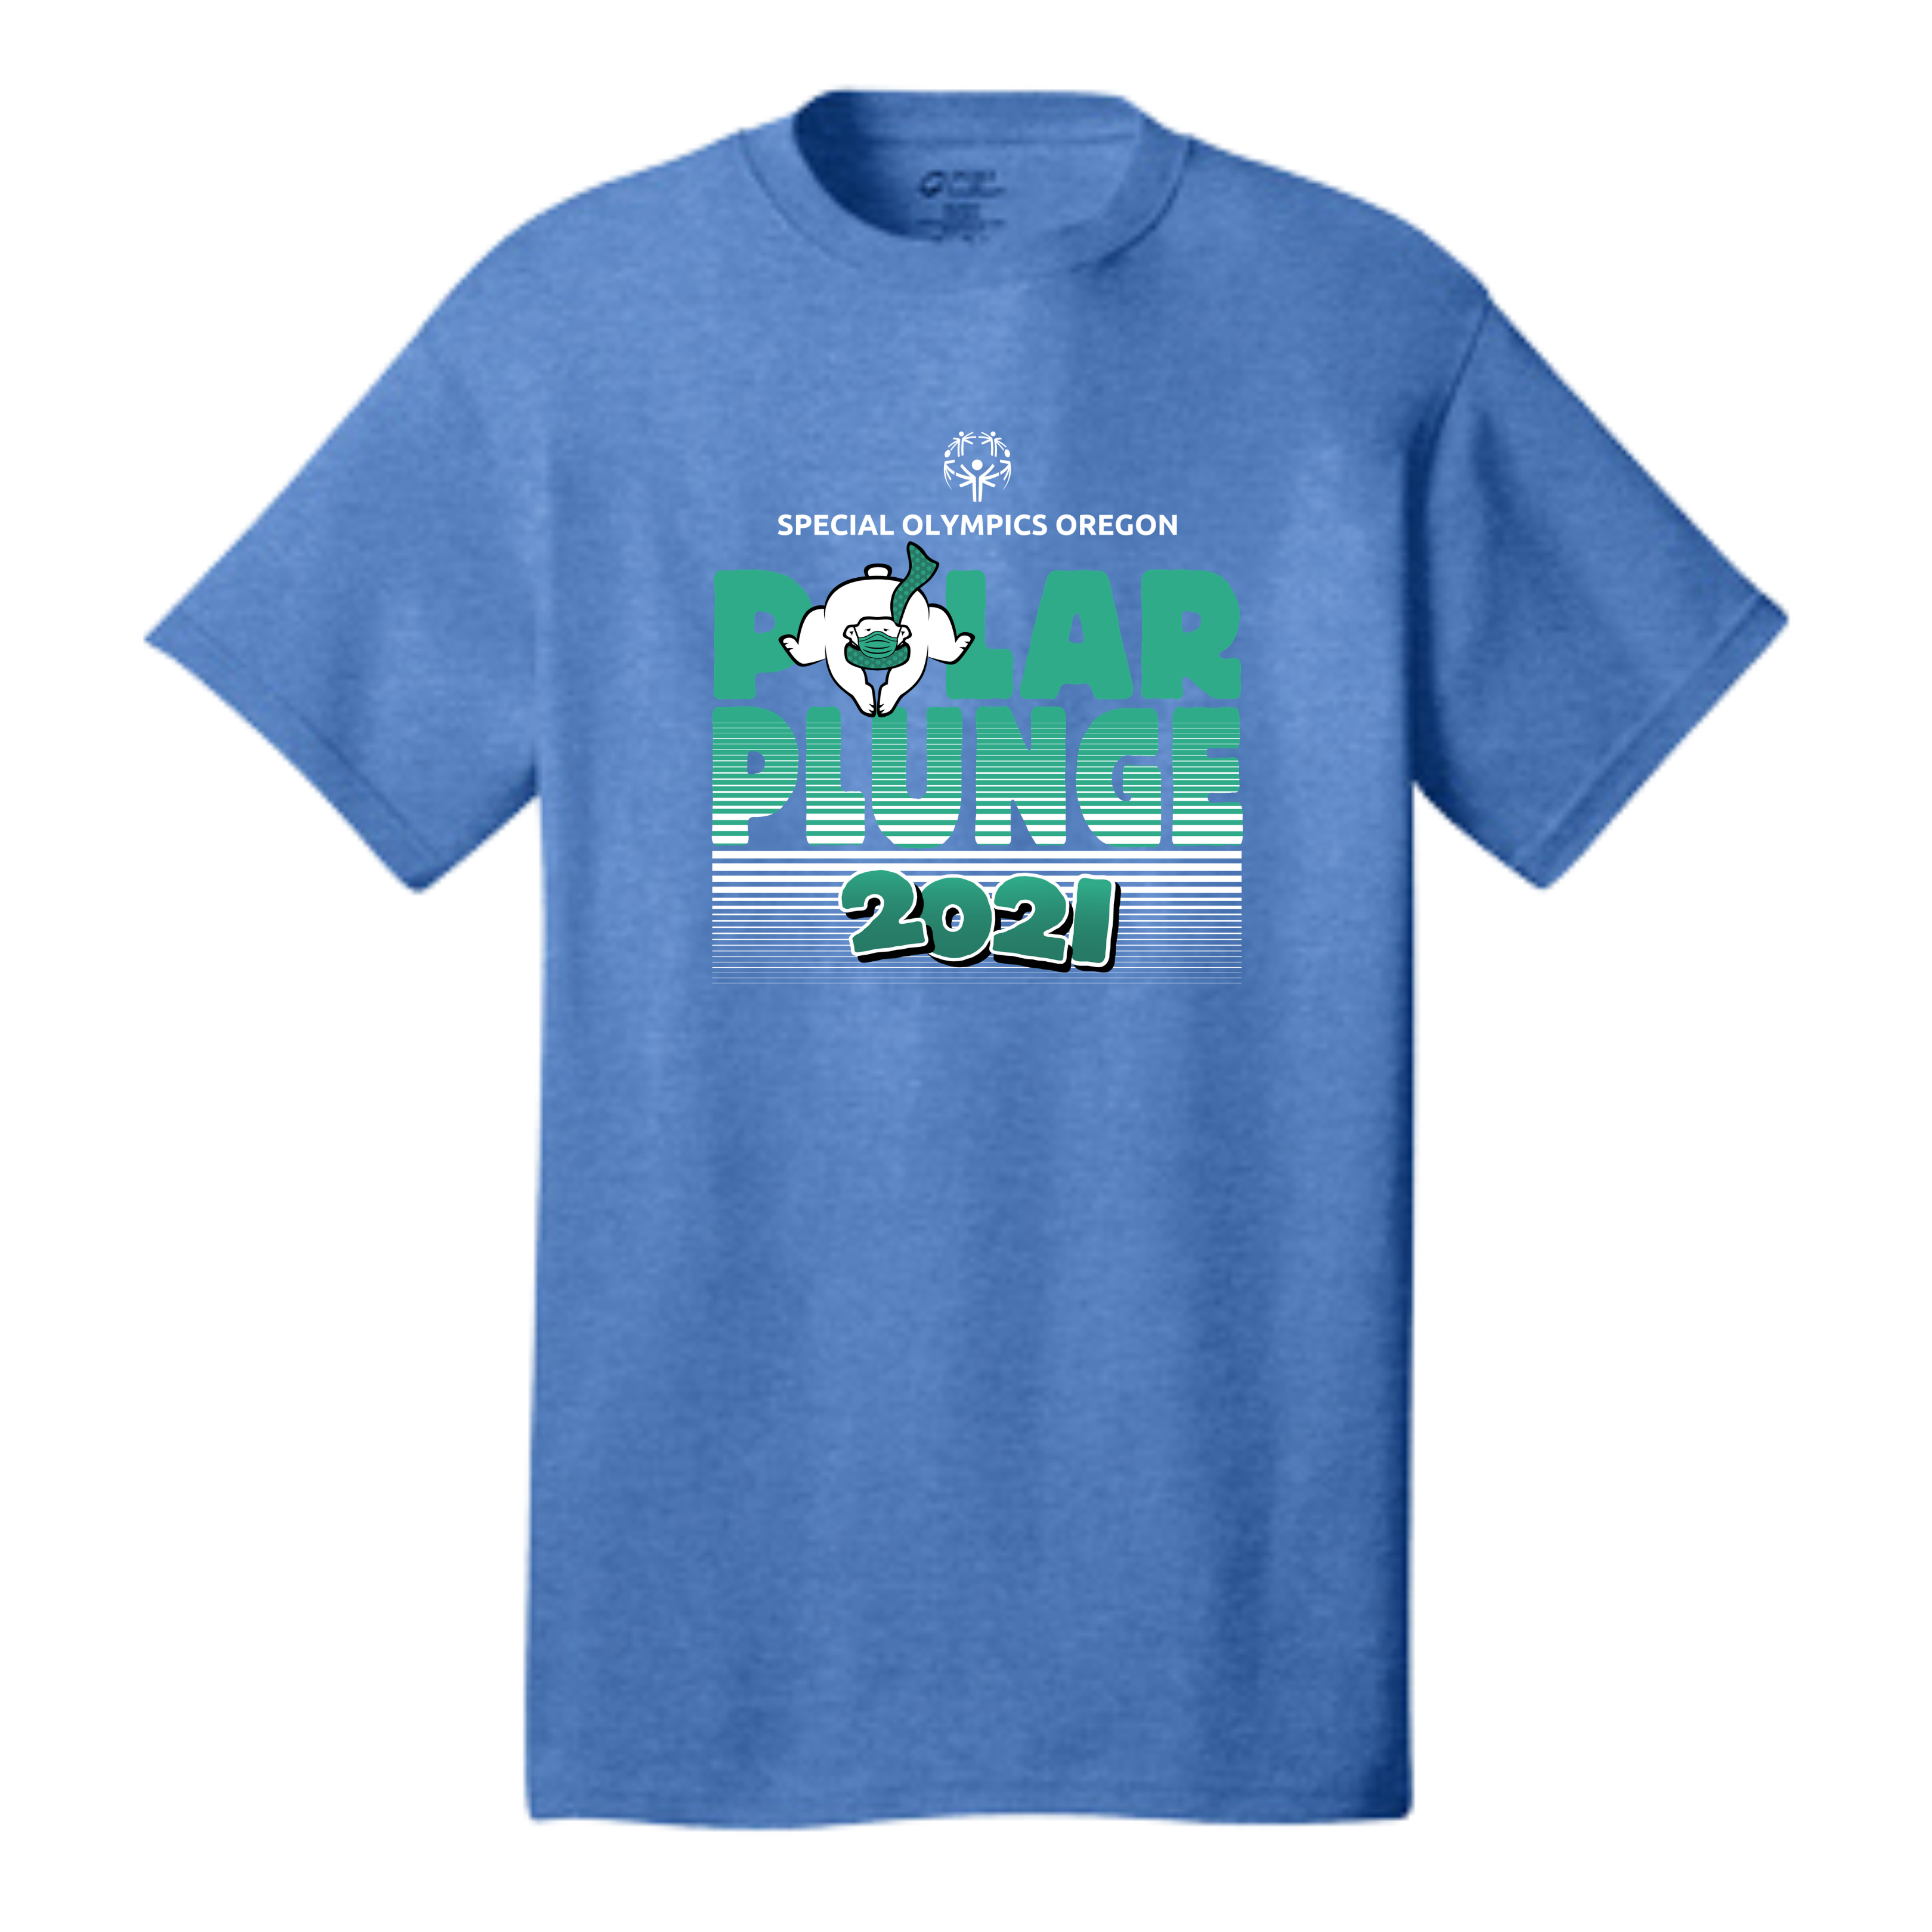 Blue heather t-shirt with Plunge logo in green and white